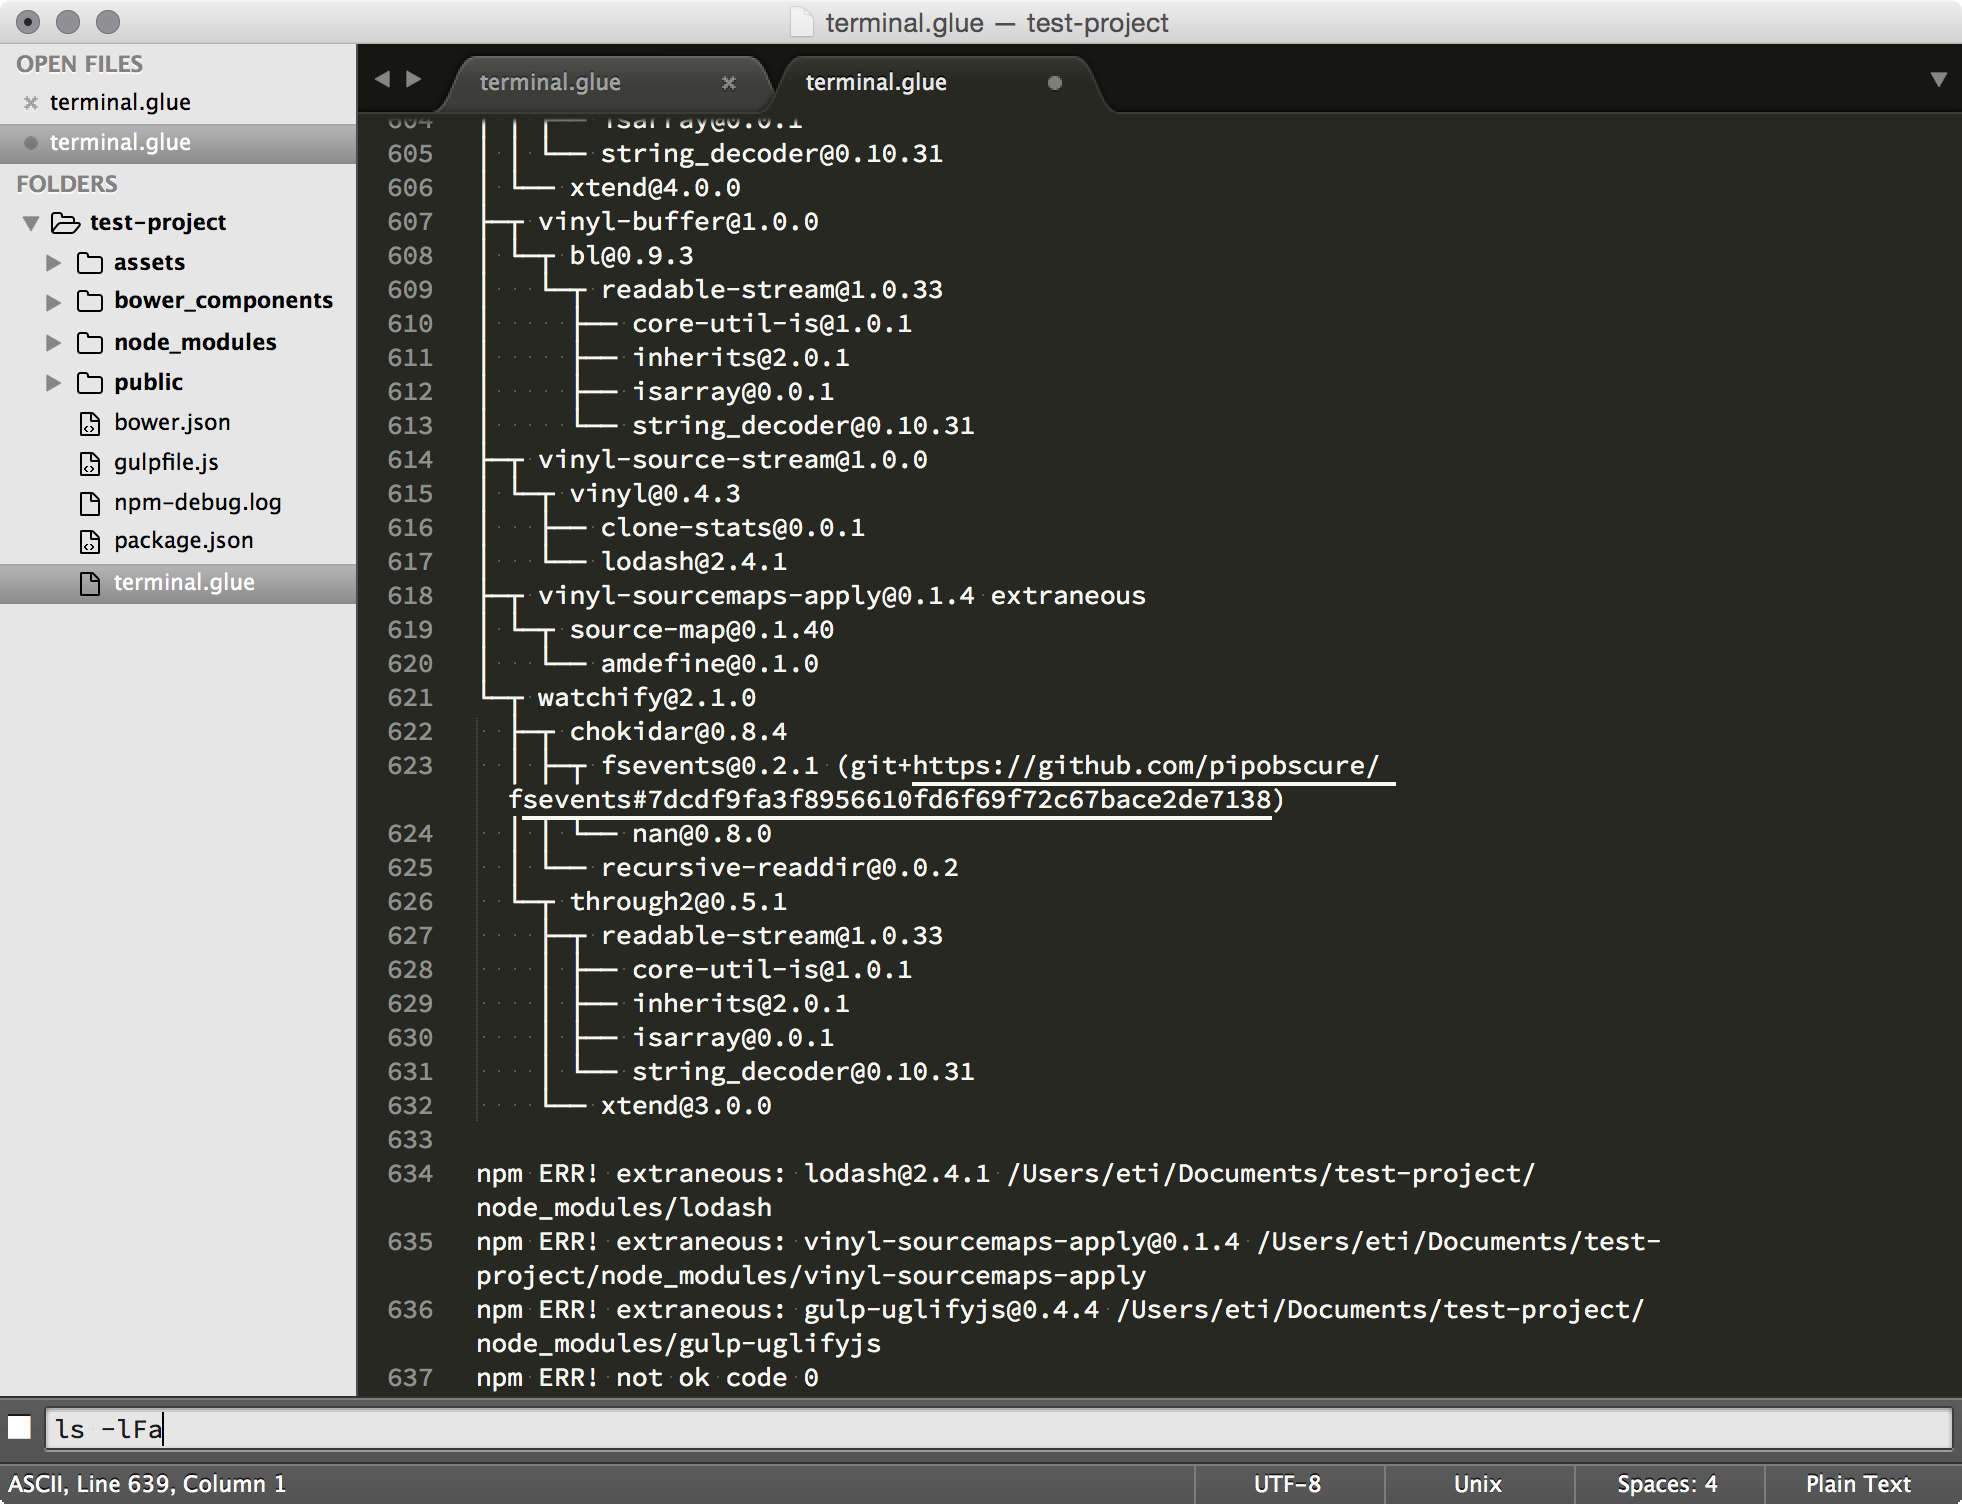 sublime text 3 - terminal.png